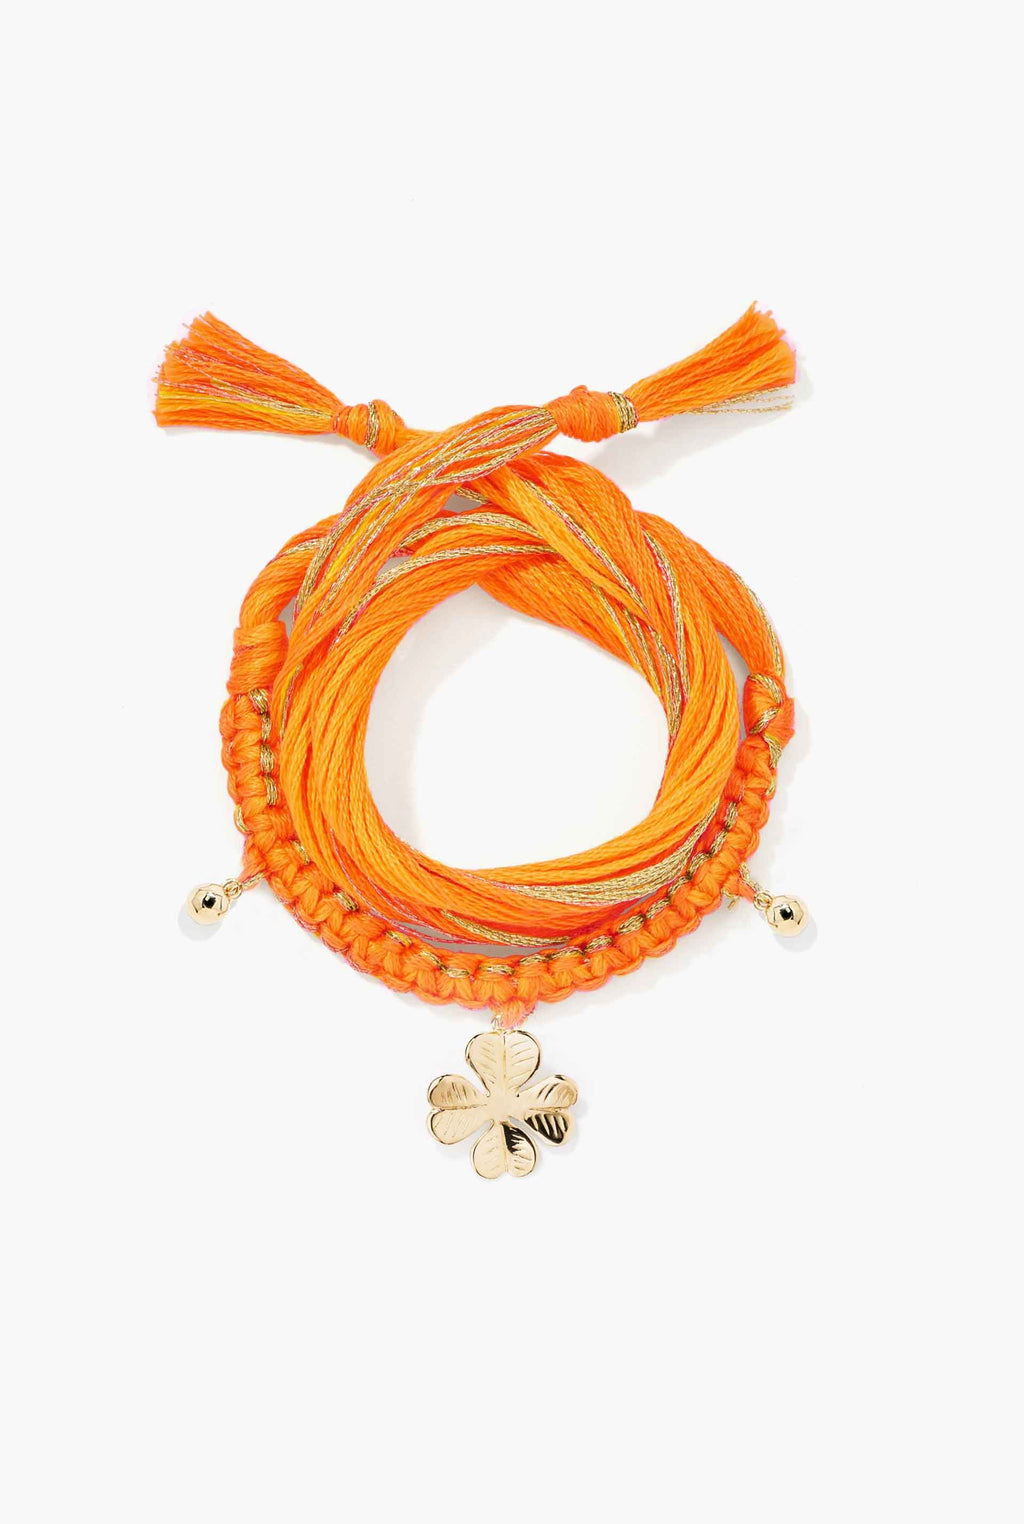 Aurélie Bidermann - Bracelet Honolulu orange, charm trèfle